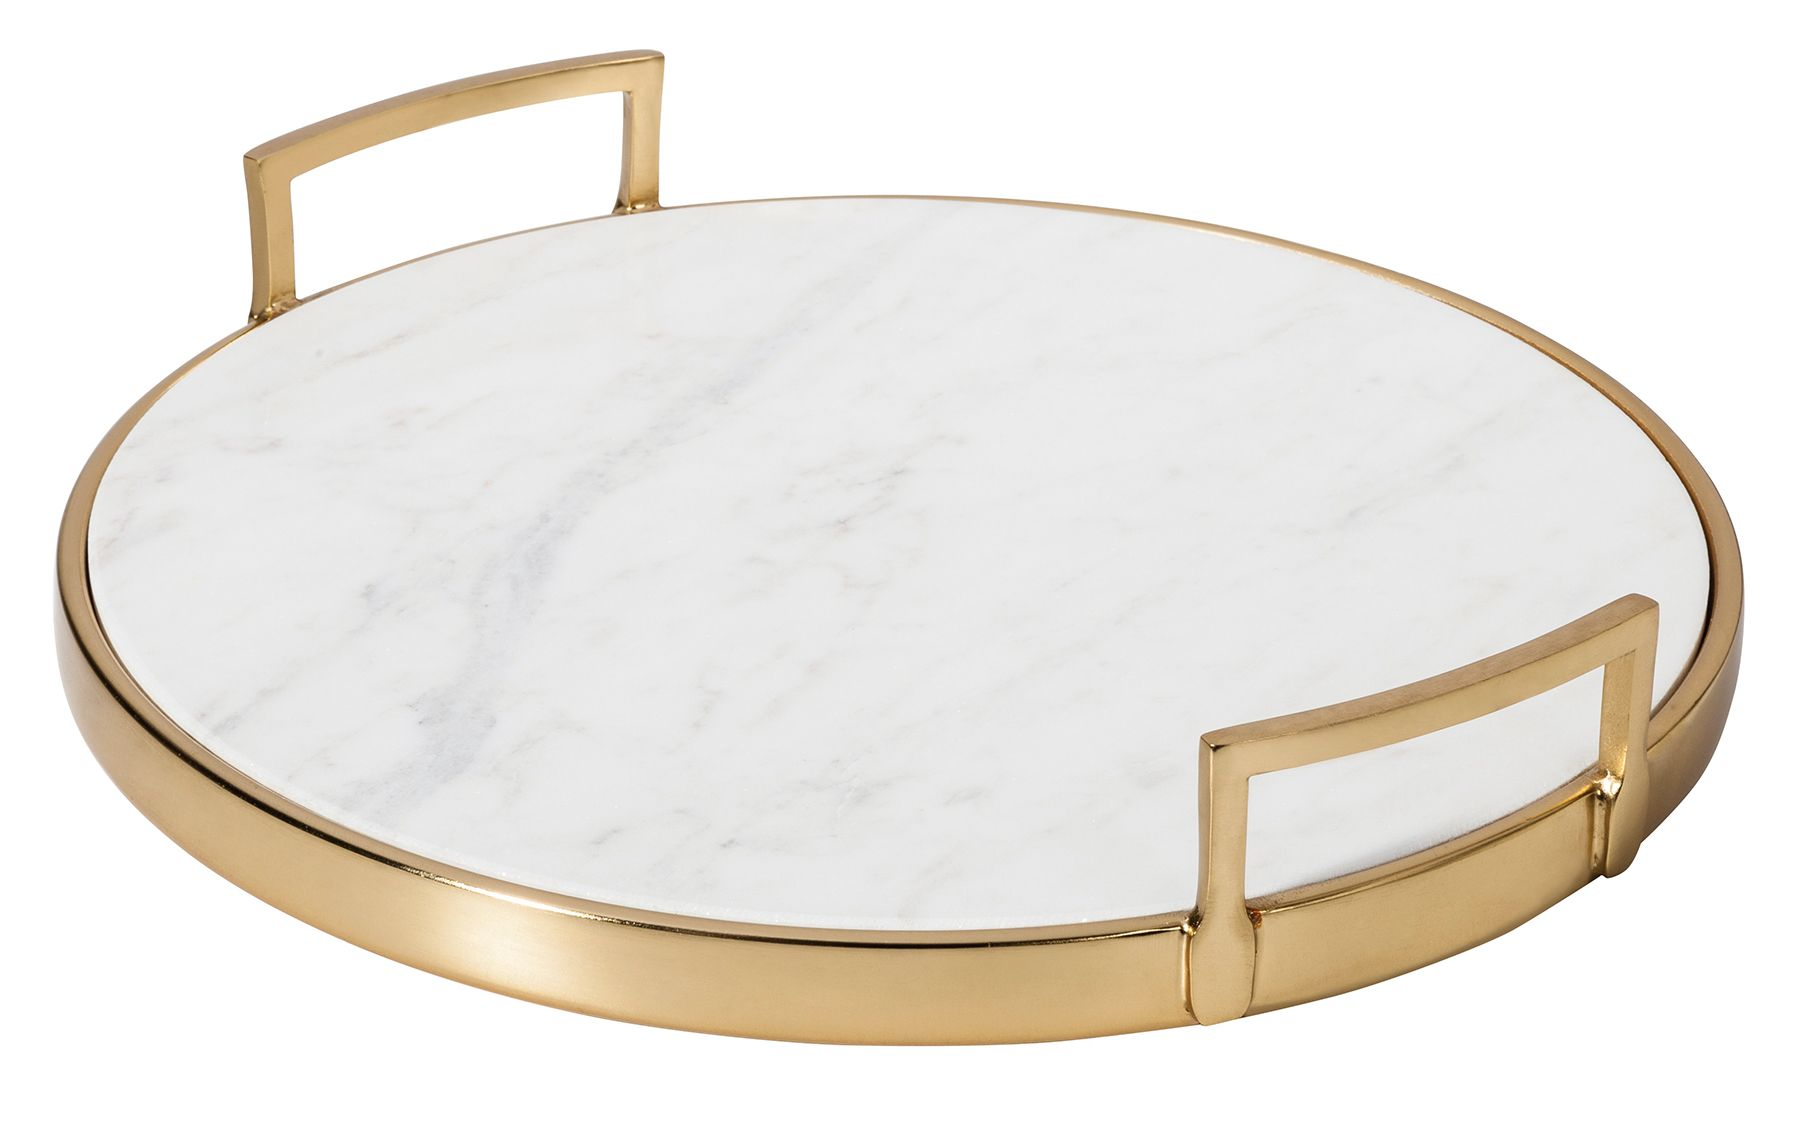 Target S Threshold Line Delivers Again The Marble Serving Tray Can Hold A Bevy Of Yummy Appetizers Or Ser Marble Serving Trays Serving Tray Decor Marble Decor